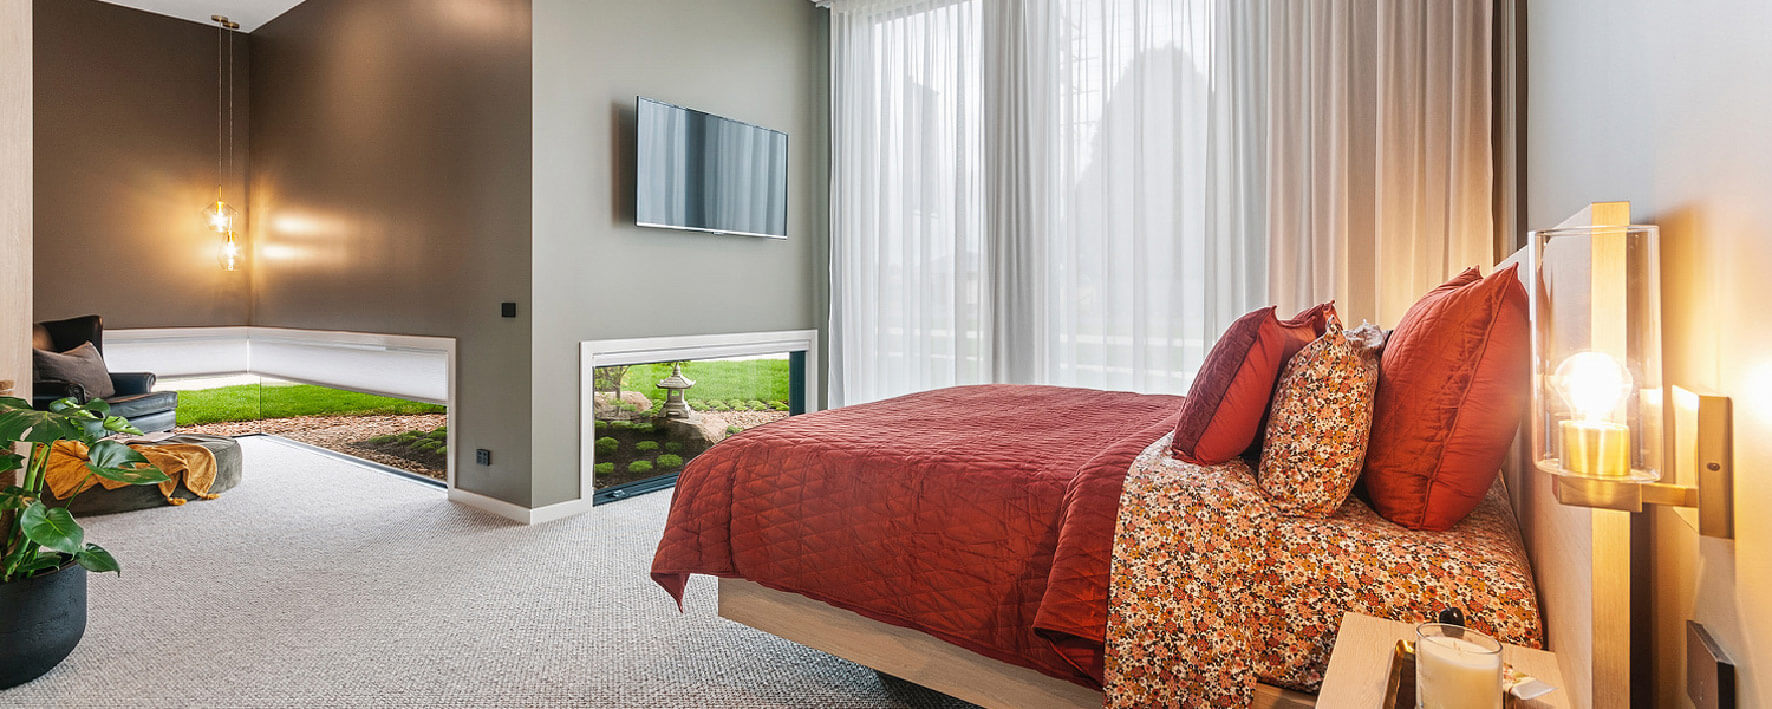 MAster bedroom of Display Home by Virtue Homes